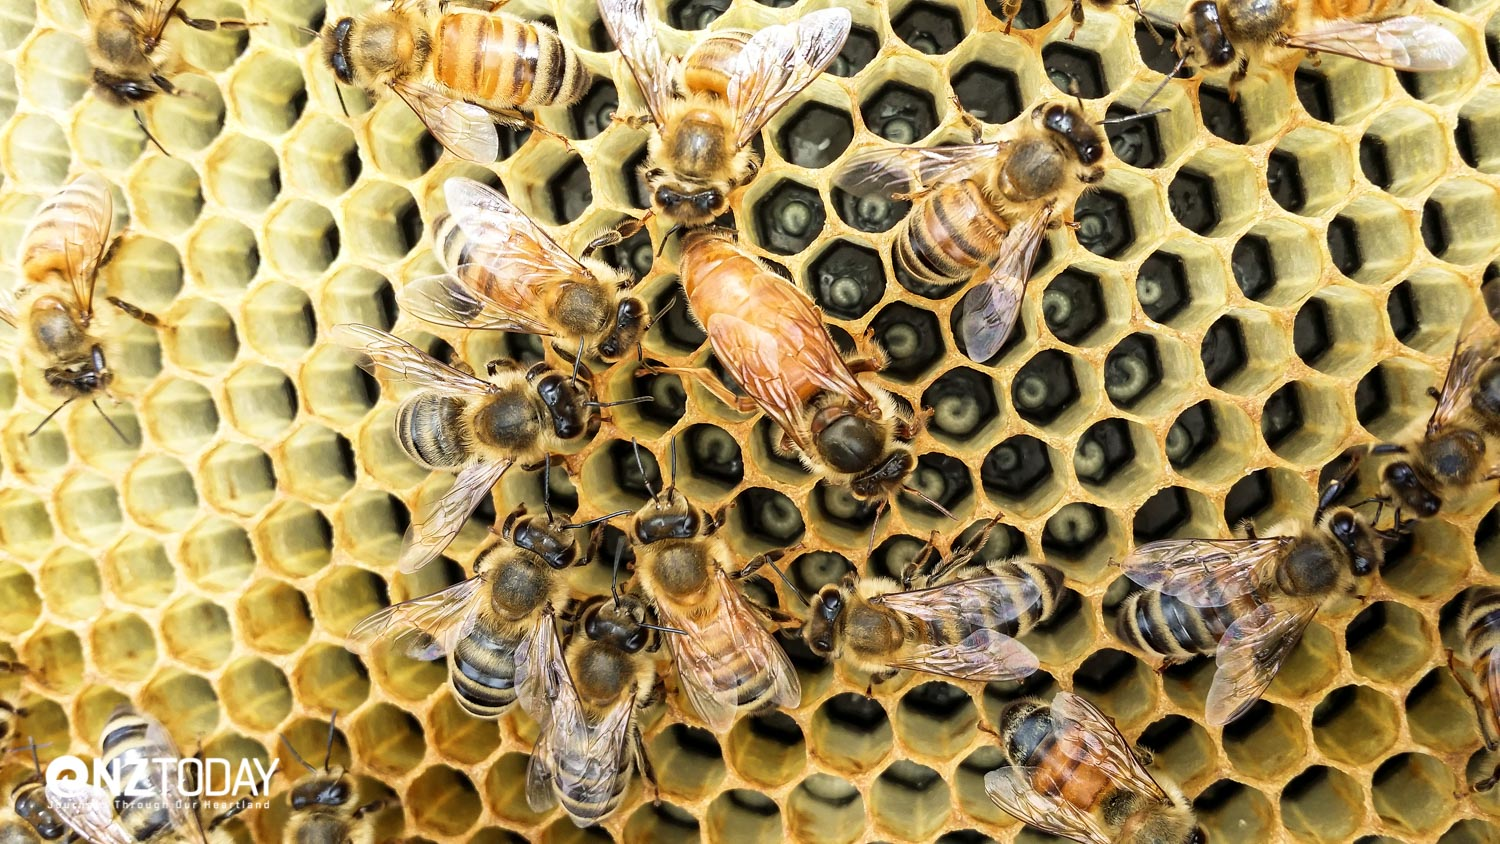 Bees around the queen